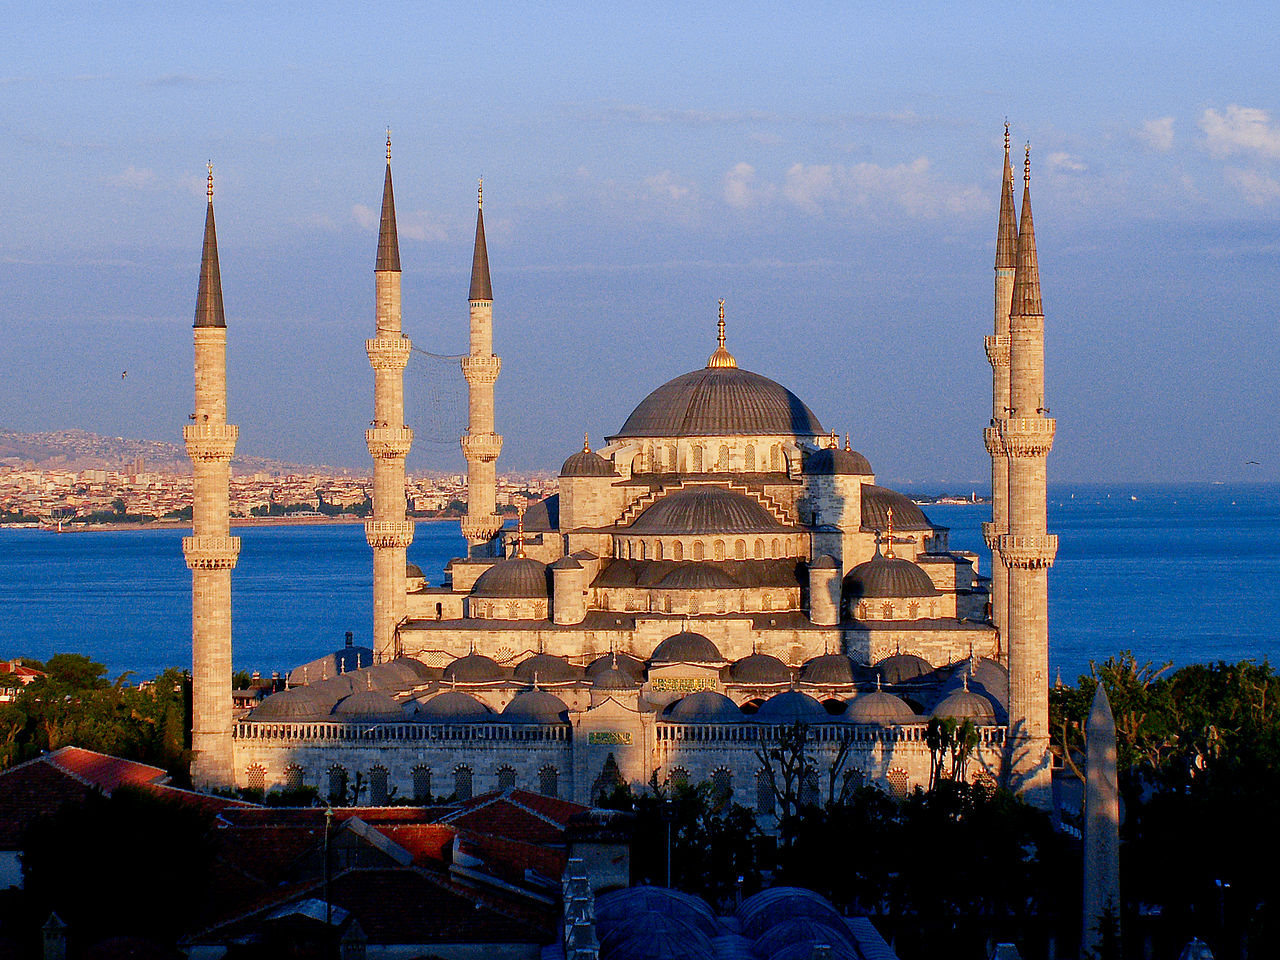 File:The Blue Mosque at sunset.jpg - Wikimedia Commons